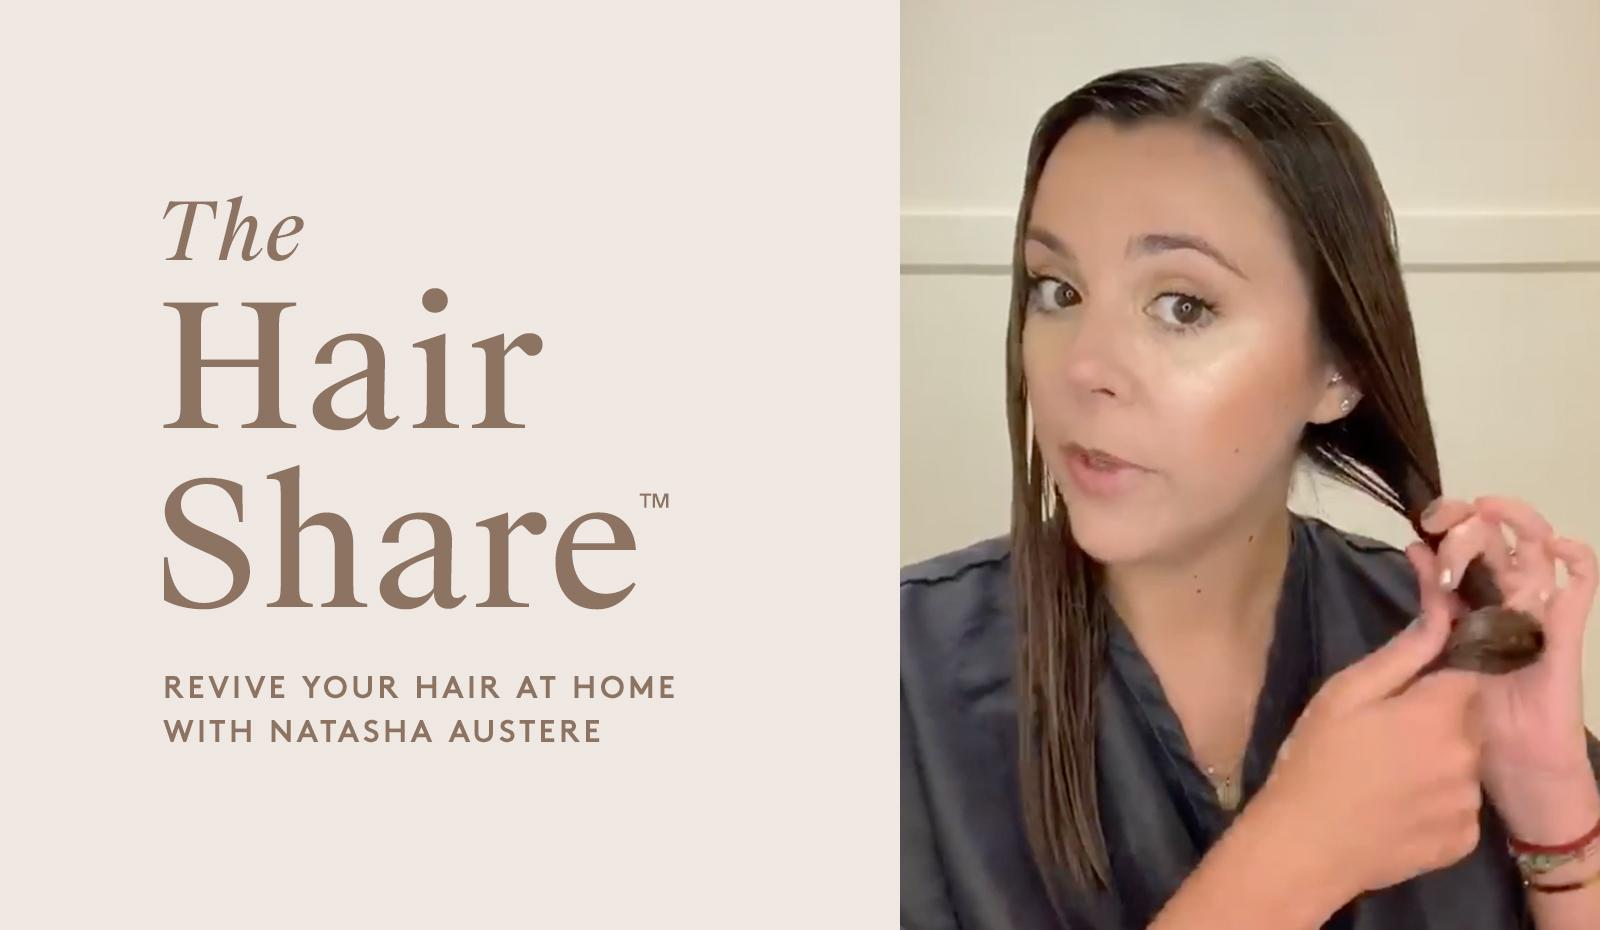 The Hair Share™: Revive Your Hair At Home with Natasha Austere